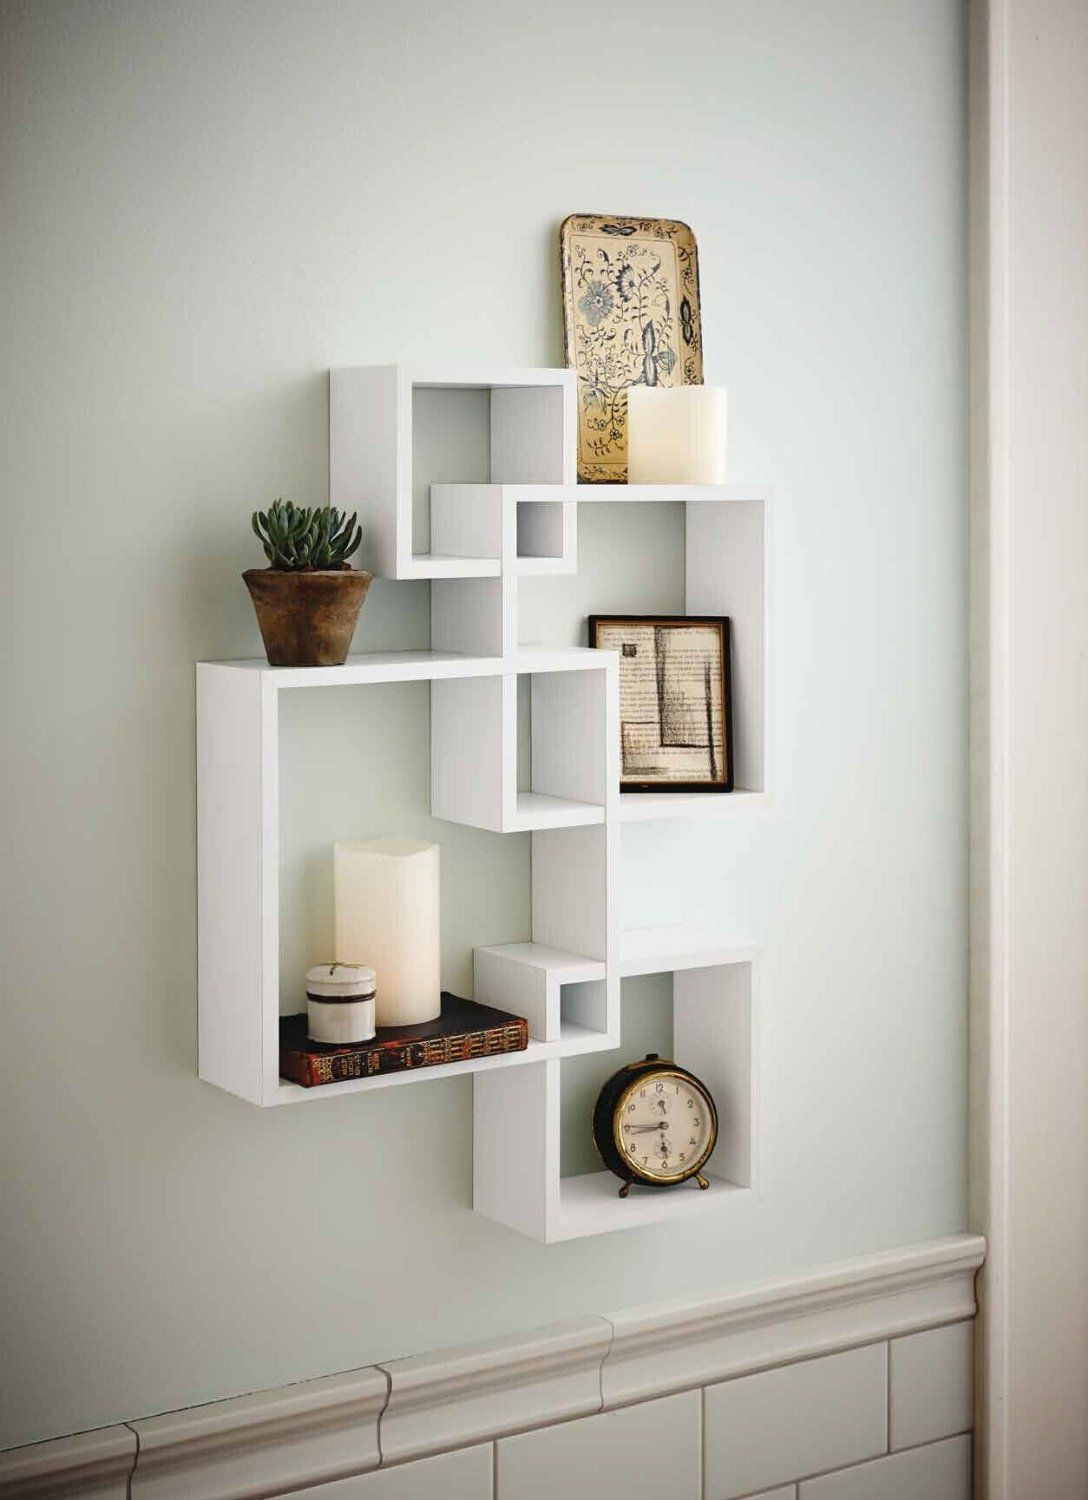 generic intersecting squares wall shelf decorative floating shelves cube storage display overlapping room essentials bookcase instructions wooden corner diy vanity secret cubby